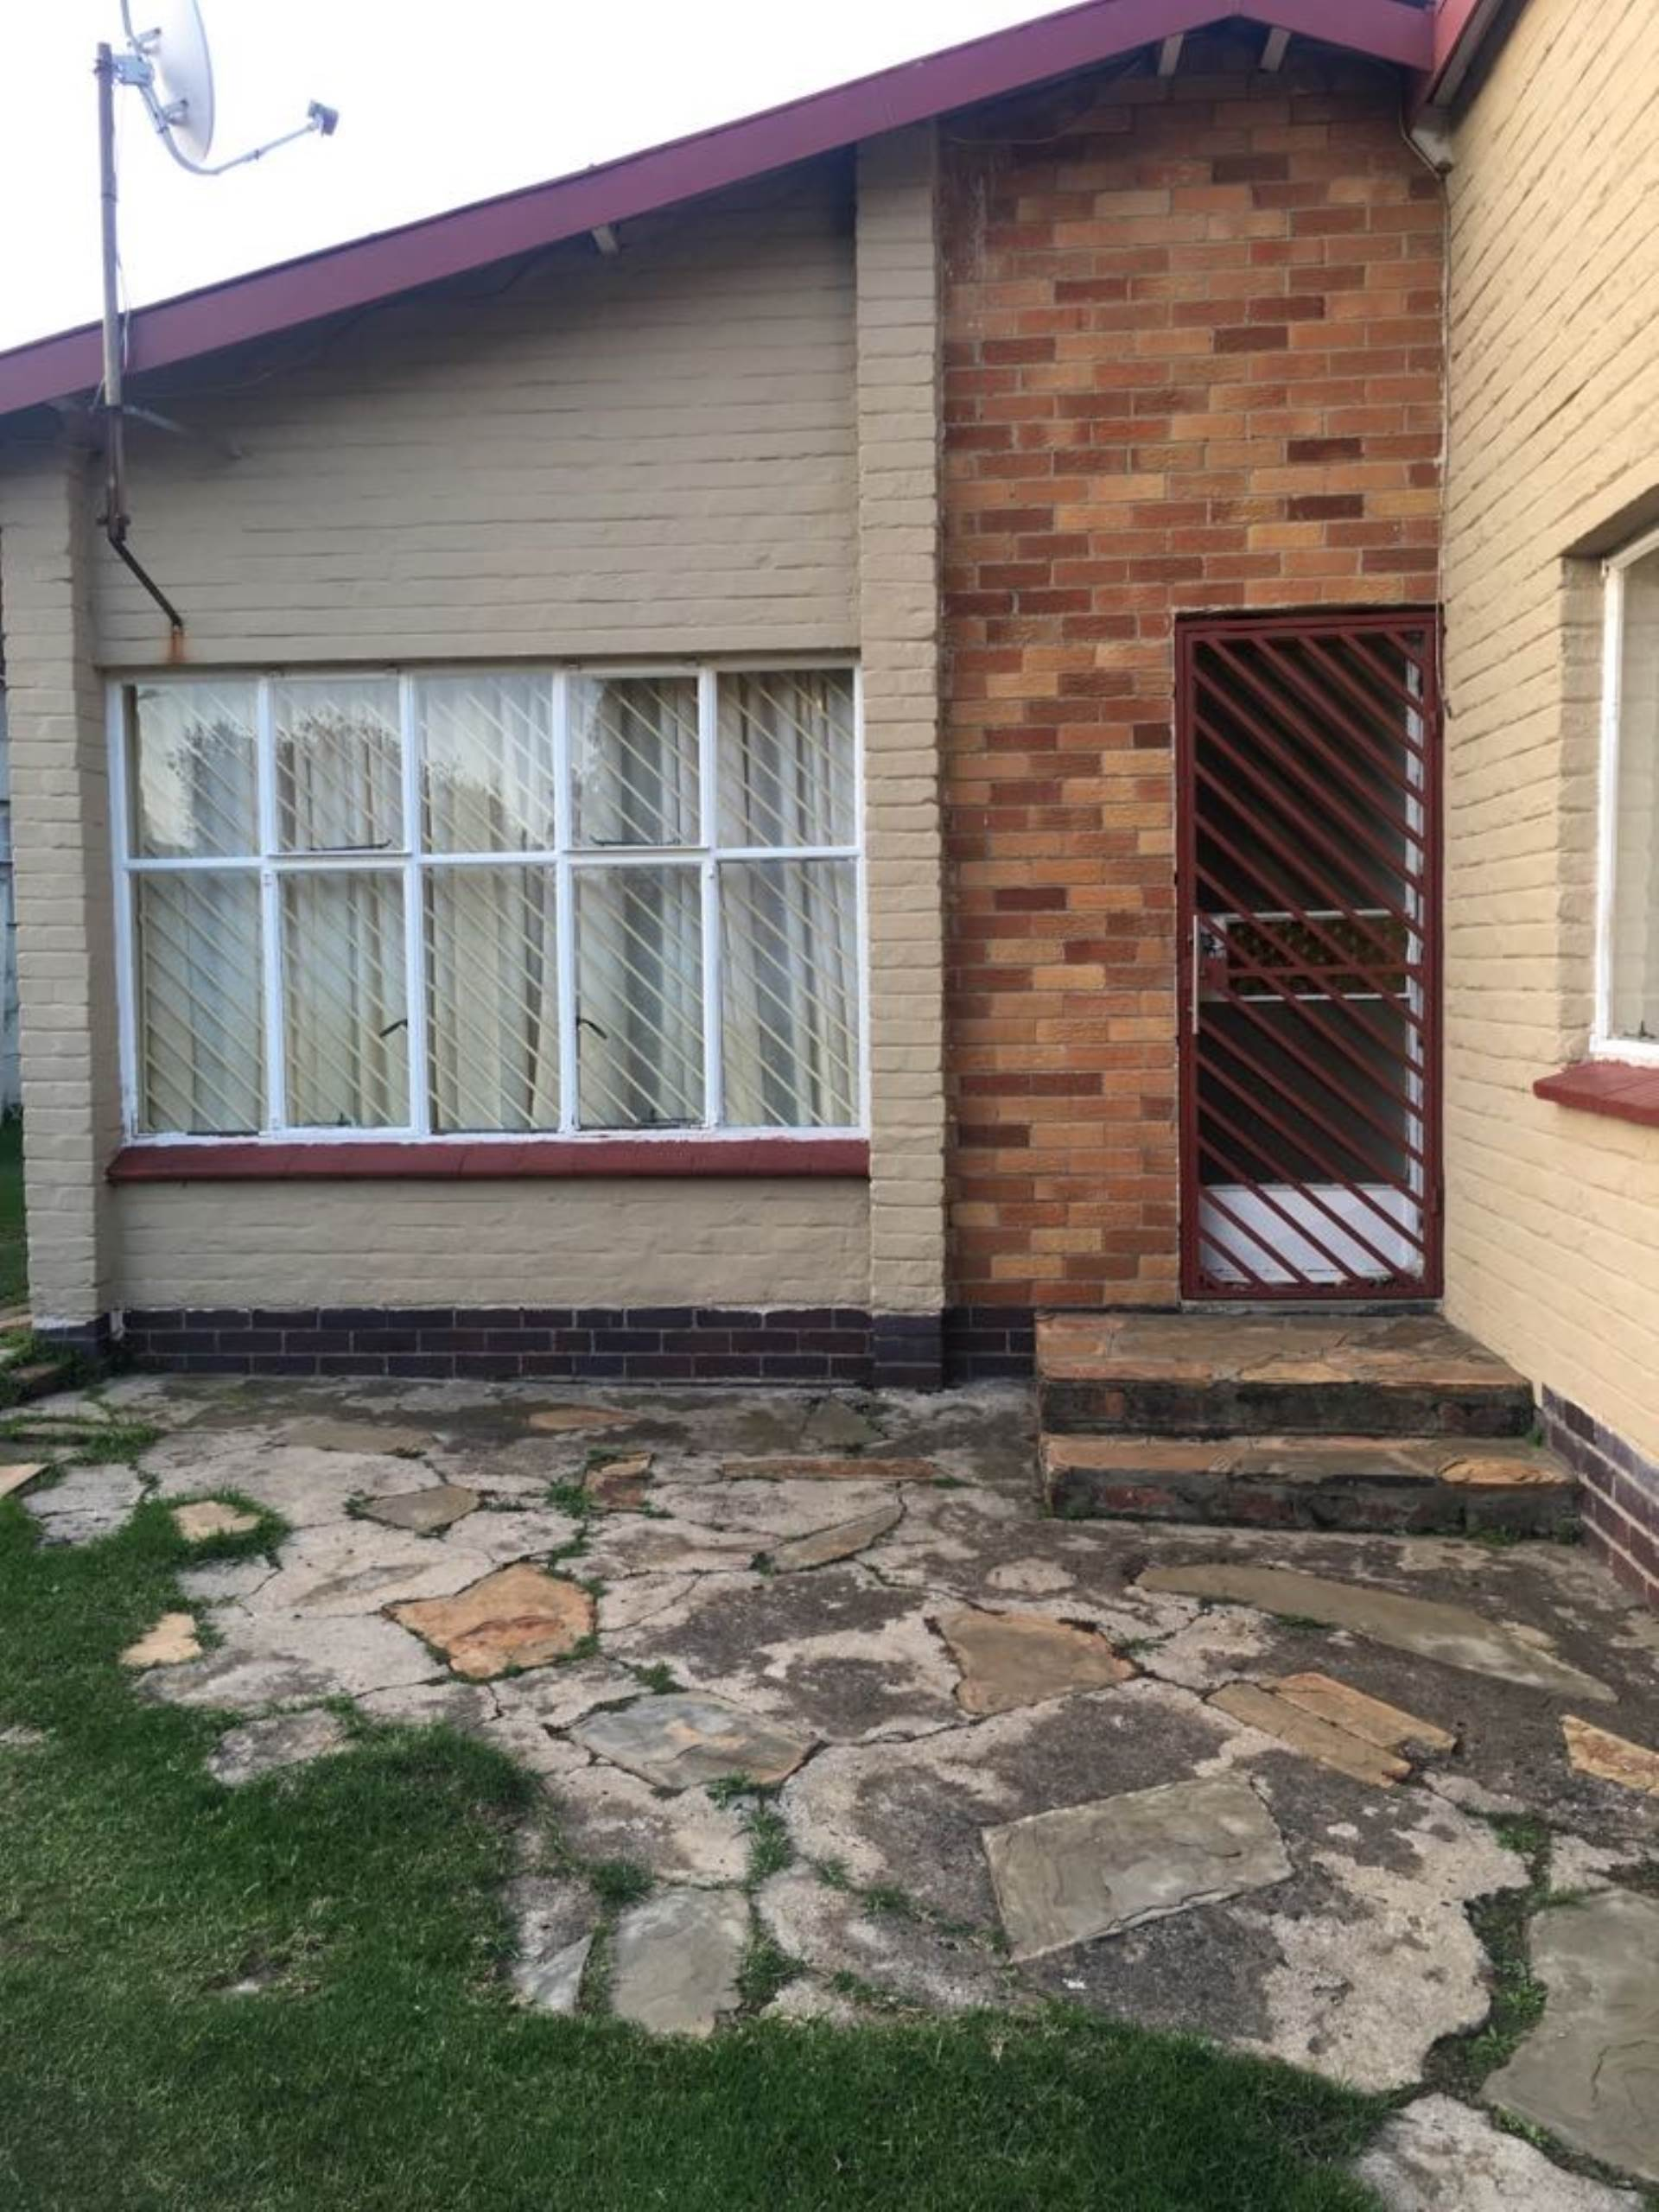 3 BedroomHouse For Sale In Ermelo